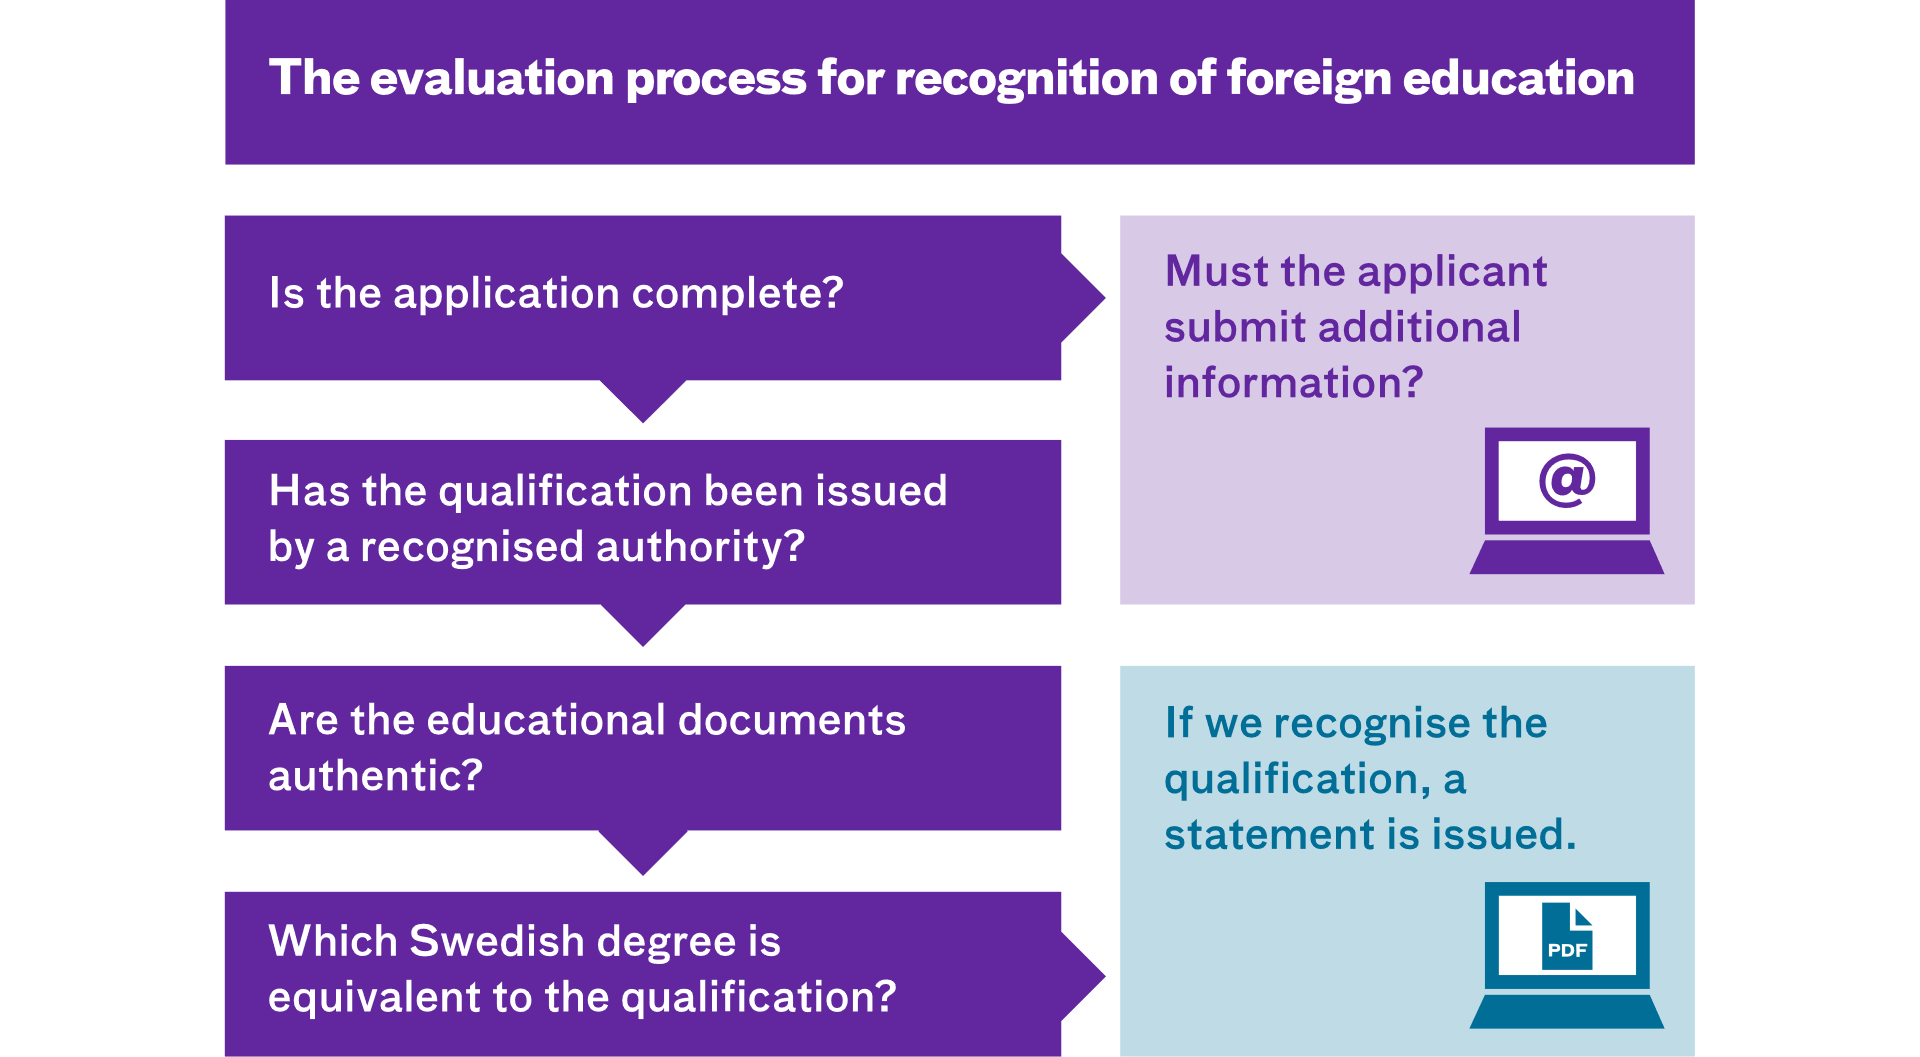 Image describing the evaluation process. The content is described in the web page.